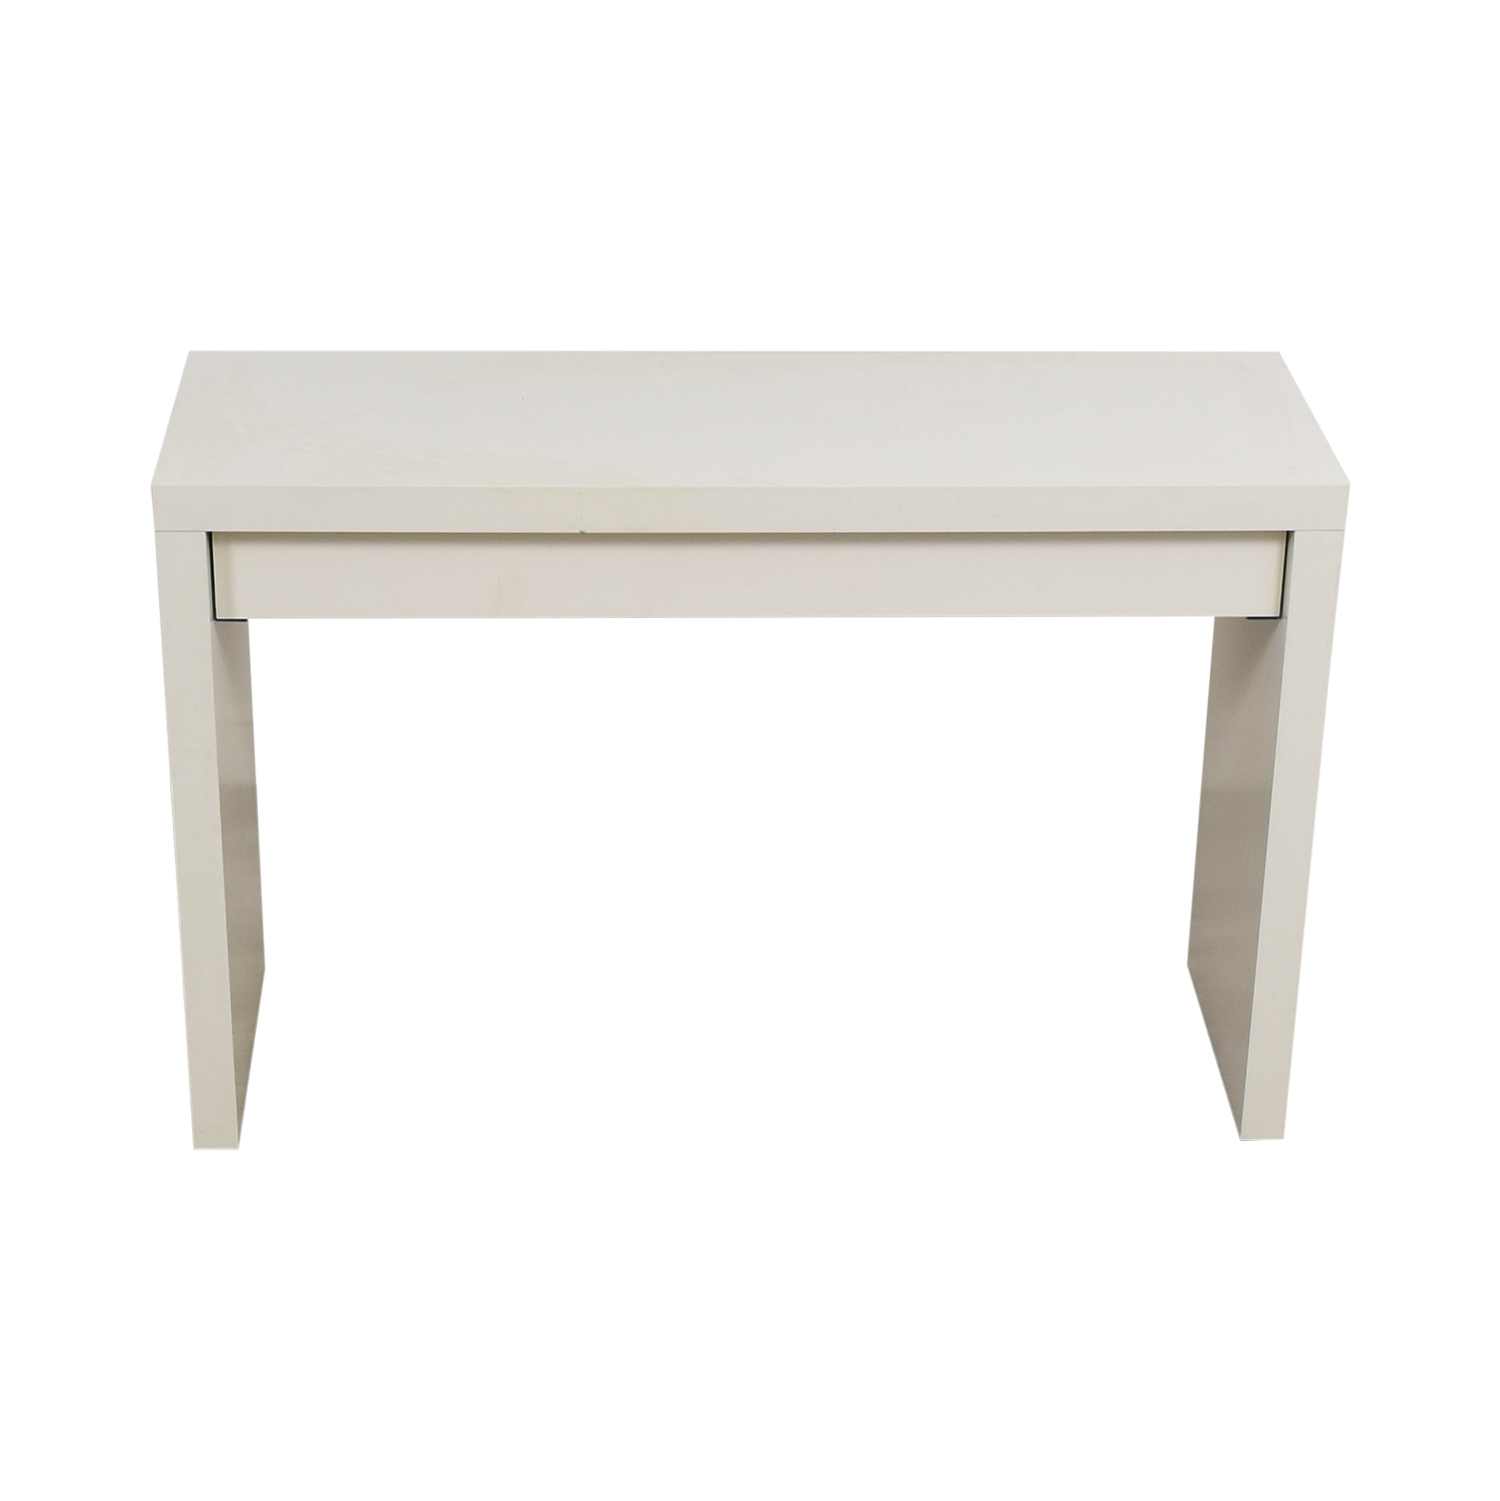 IKEA Malm White Single Drawer Narrow Desk or Table sale